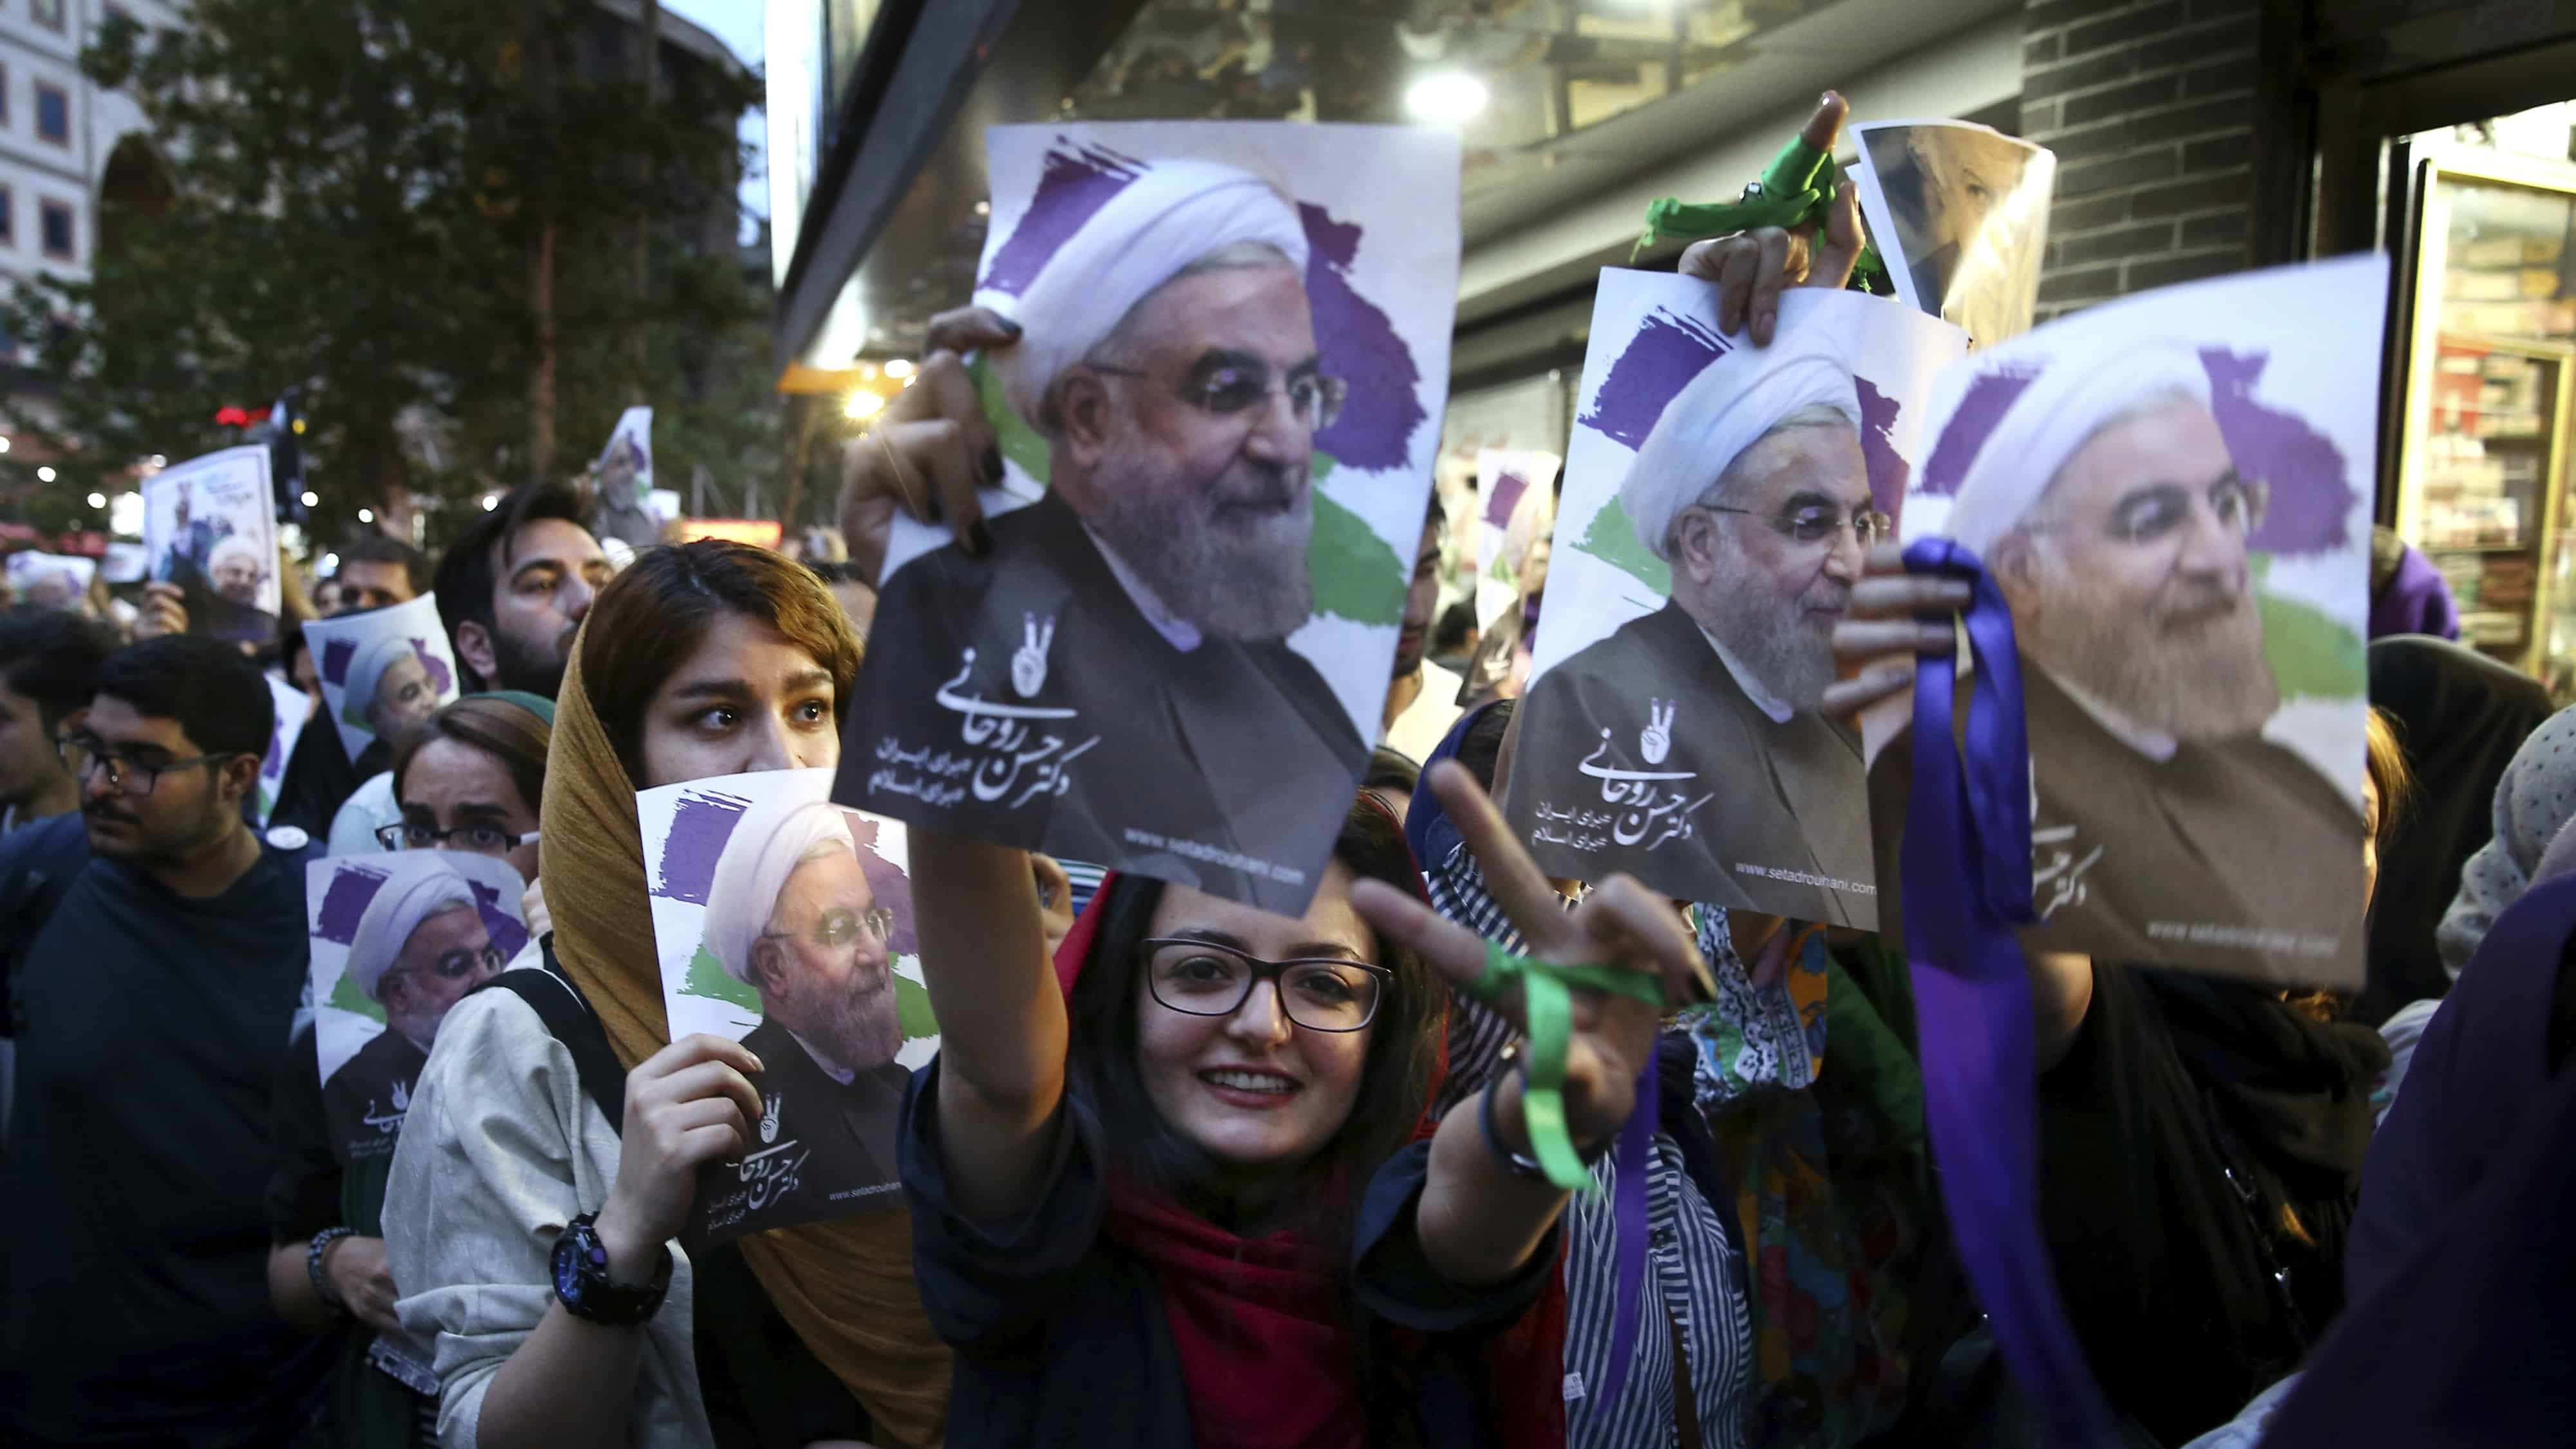 Hassan Rouhani wins Iran presidential election by a landslide